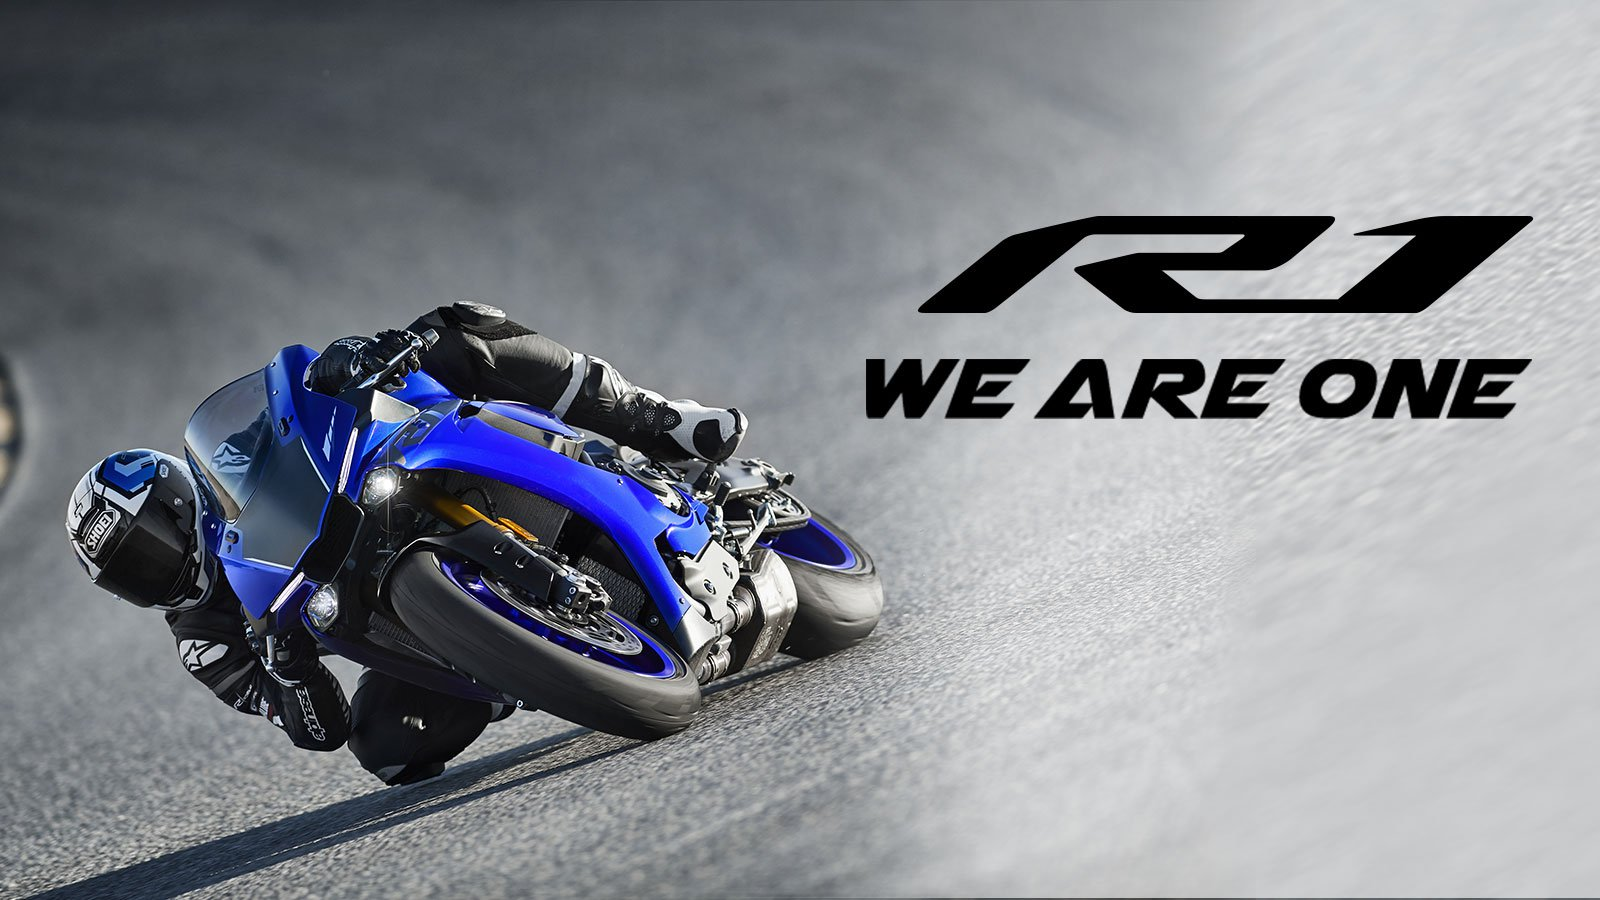 Yzf R1 Perfect Riders